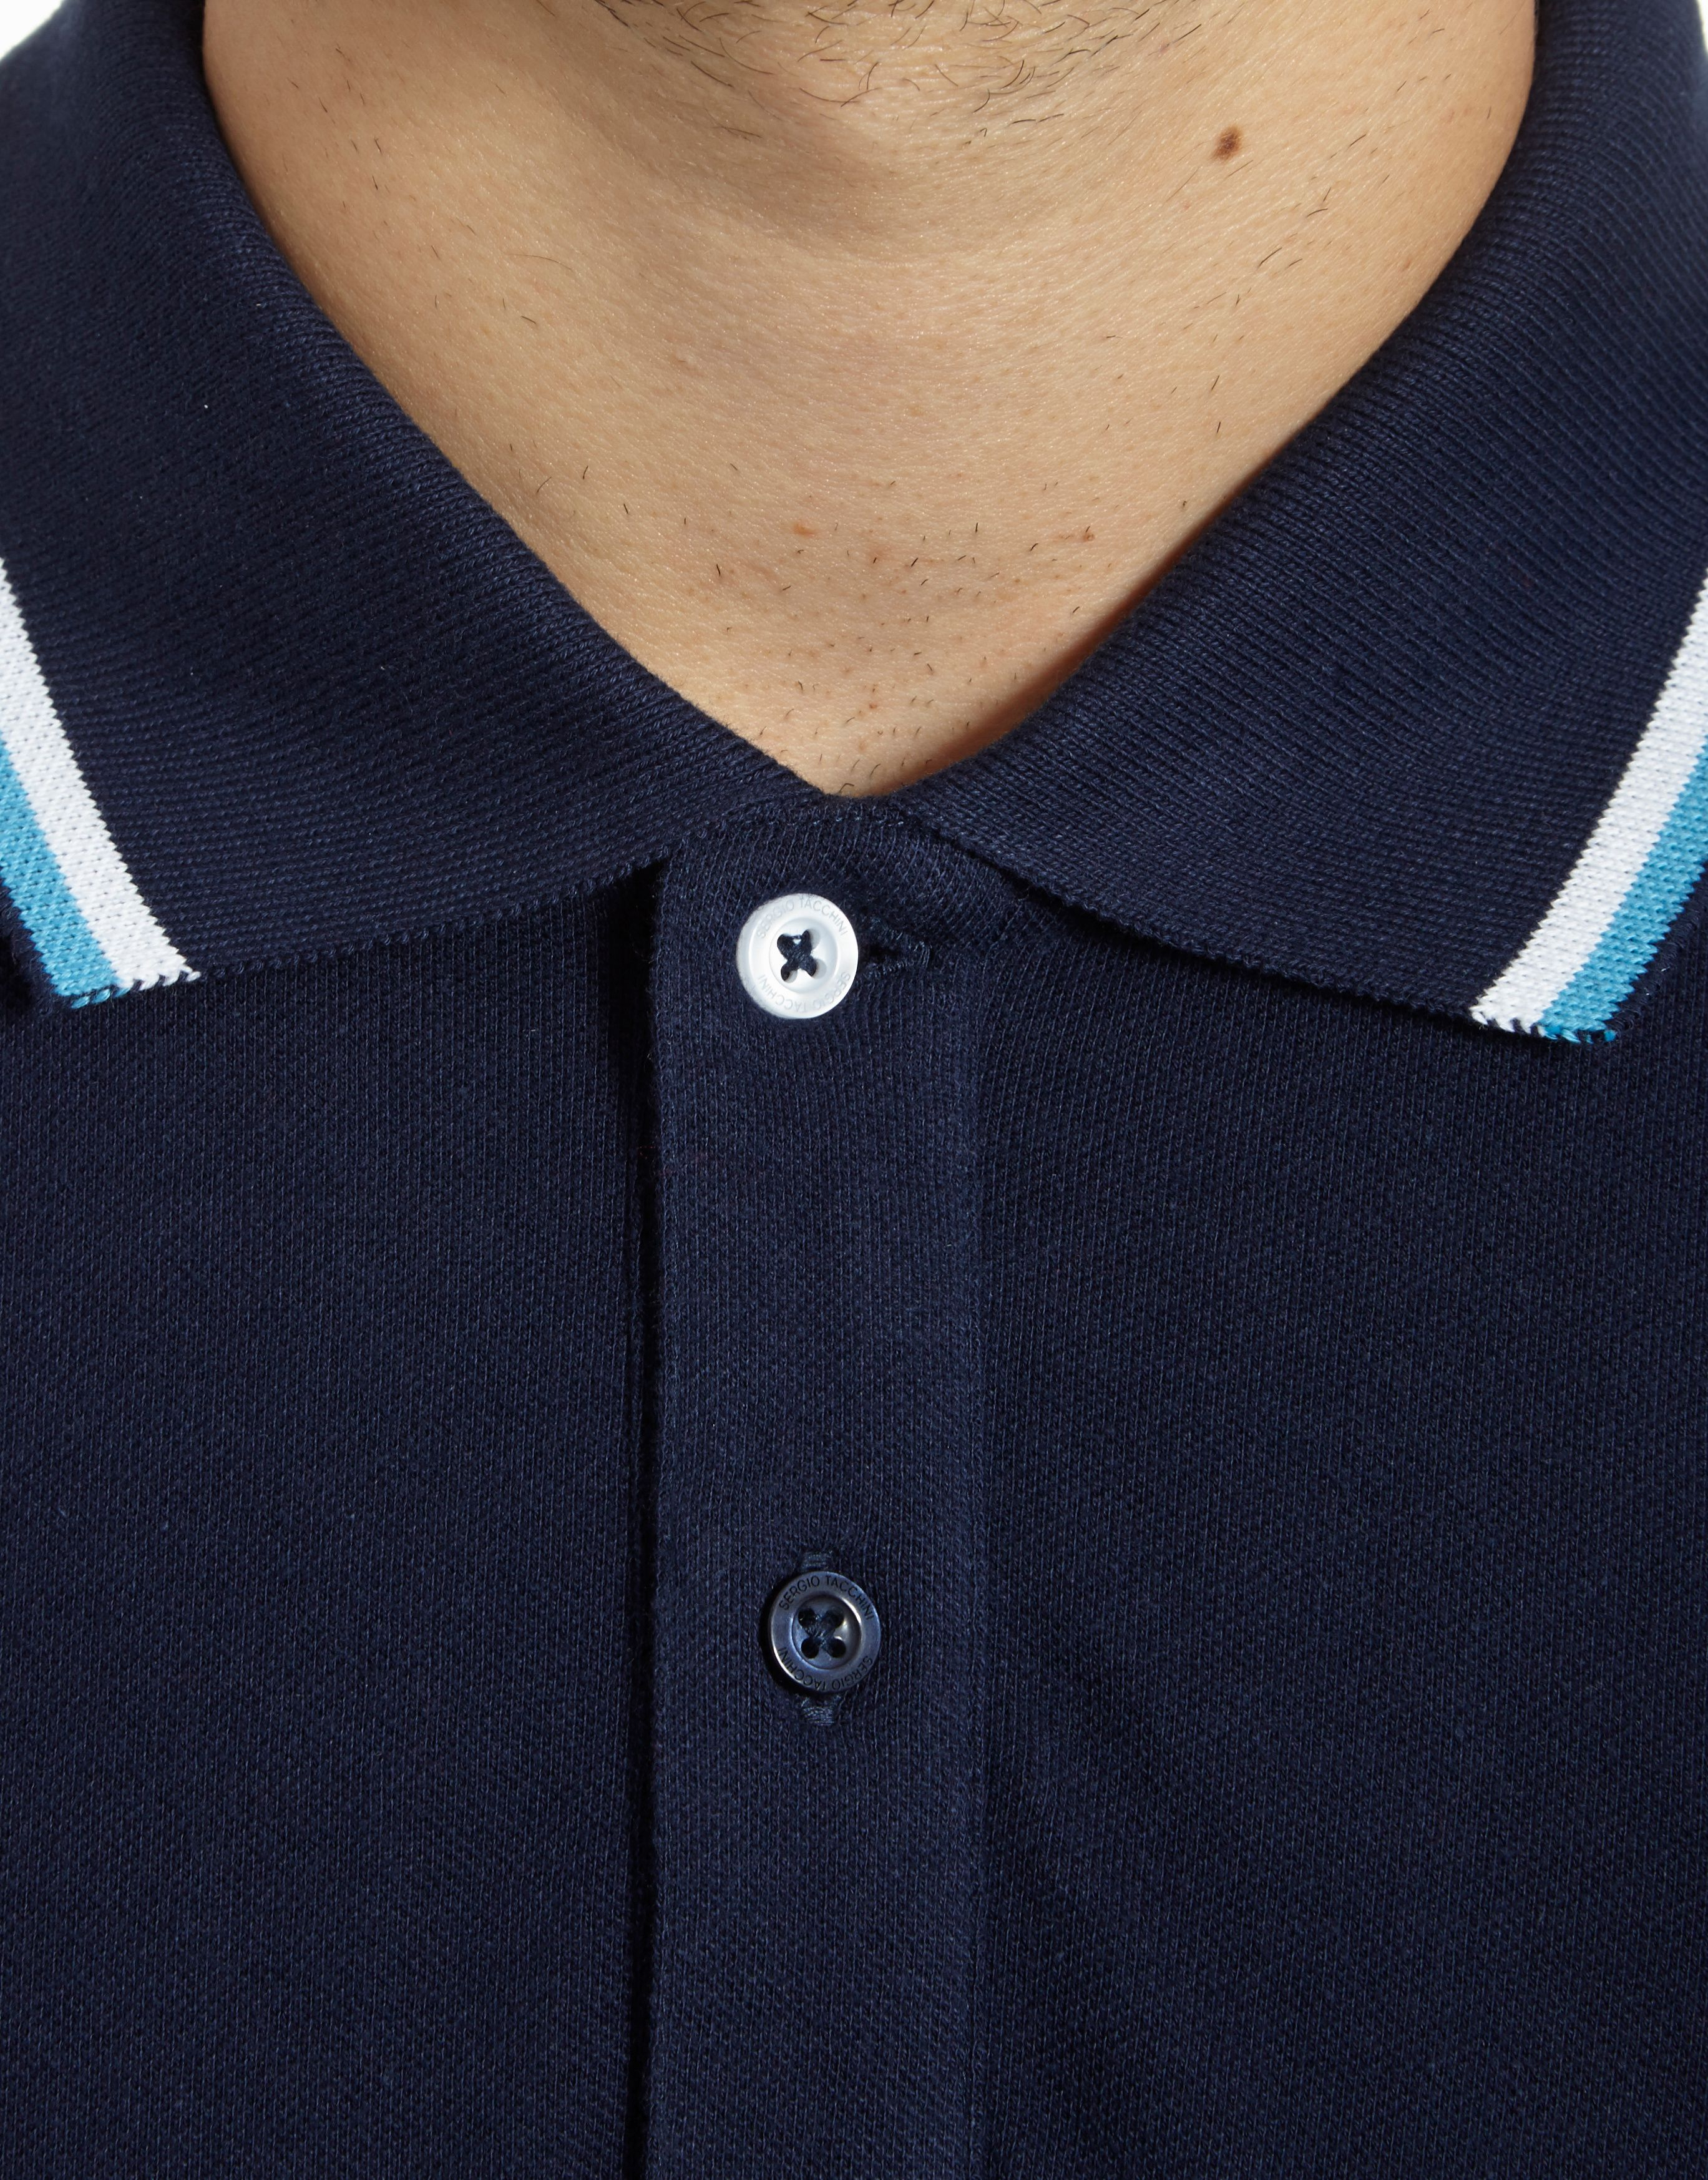 Sergio Tacchini Smash Plain Polo Shirt